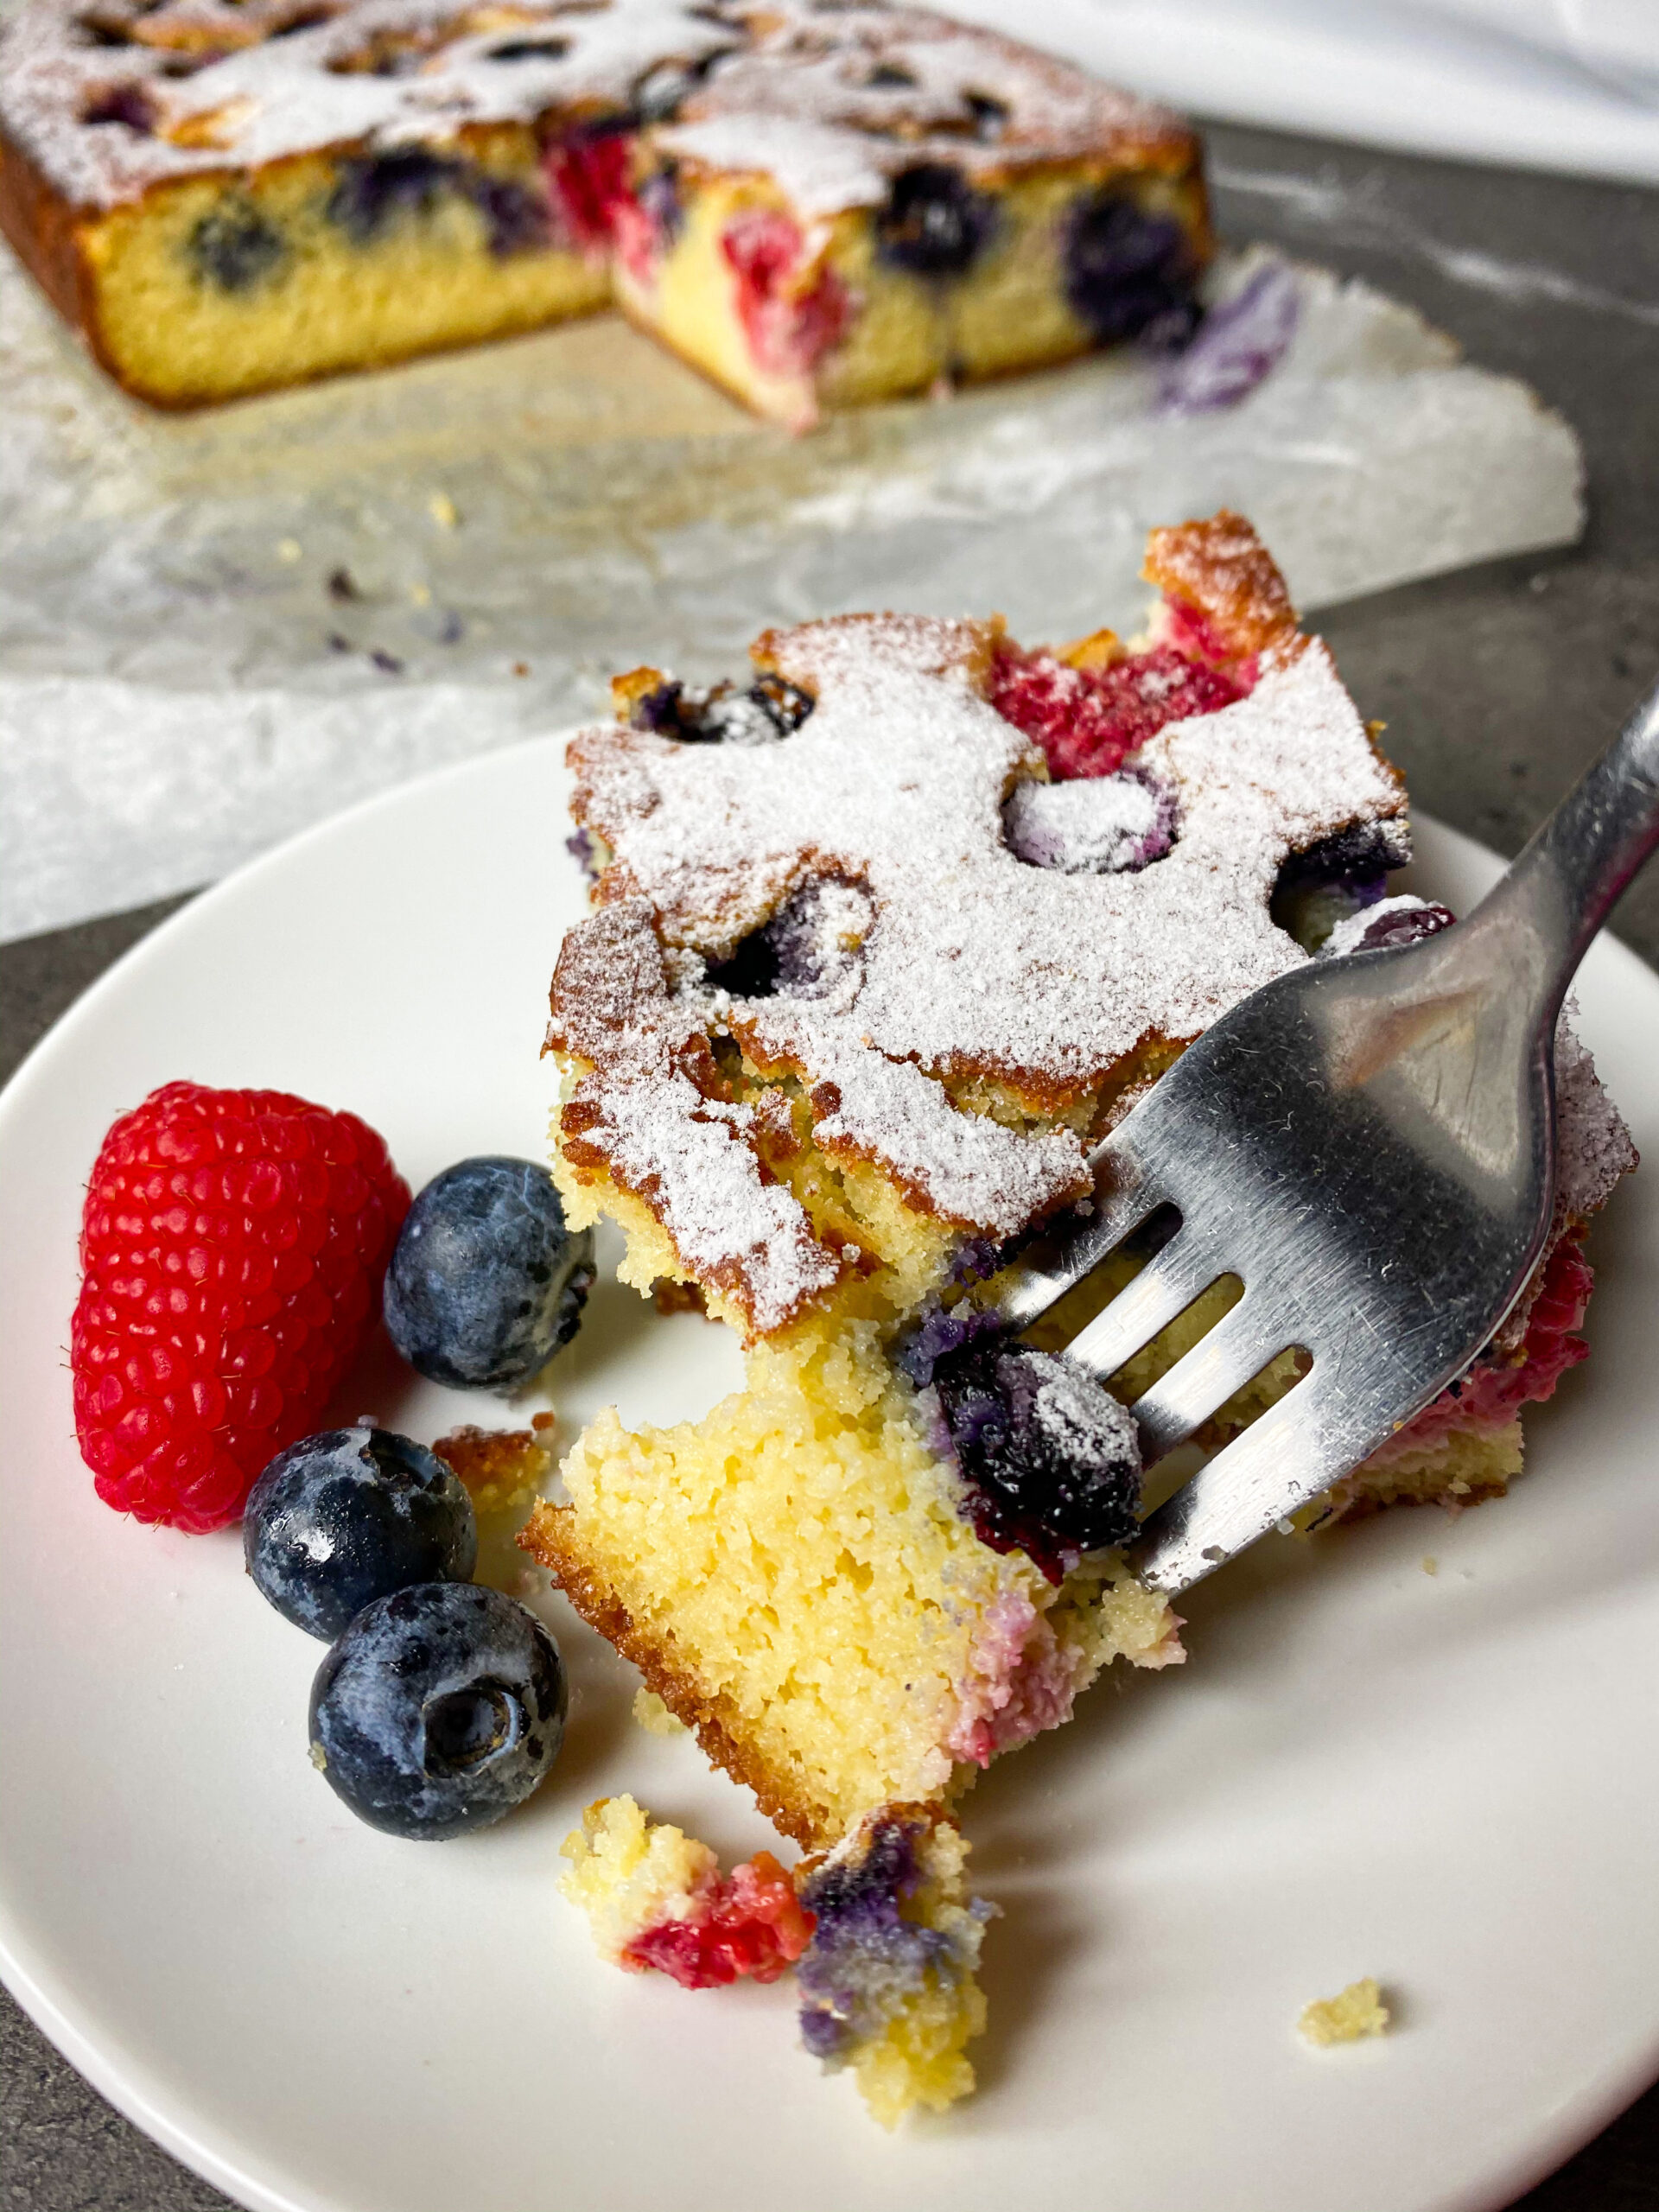 Picture of low carb butter cake with berries